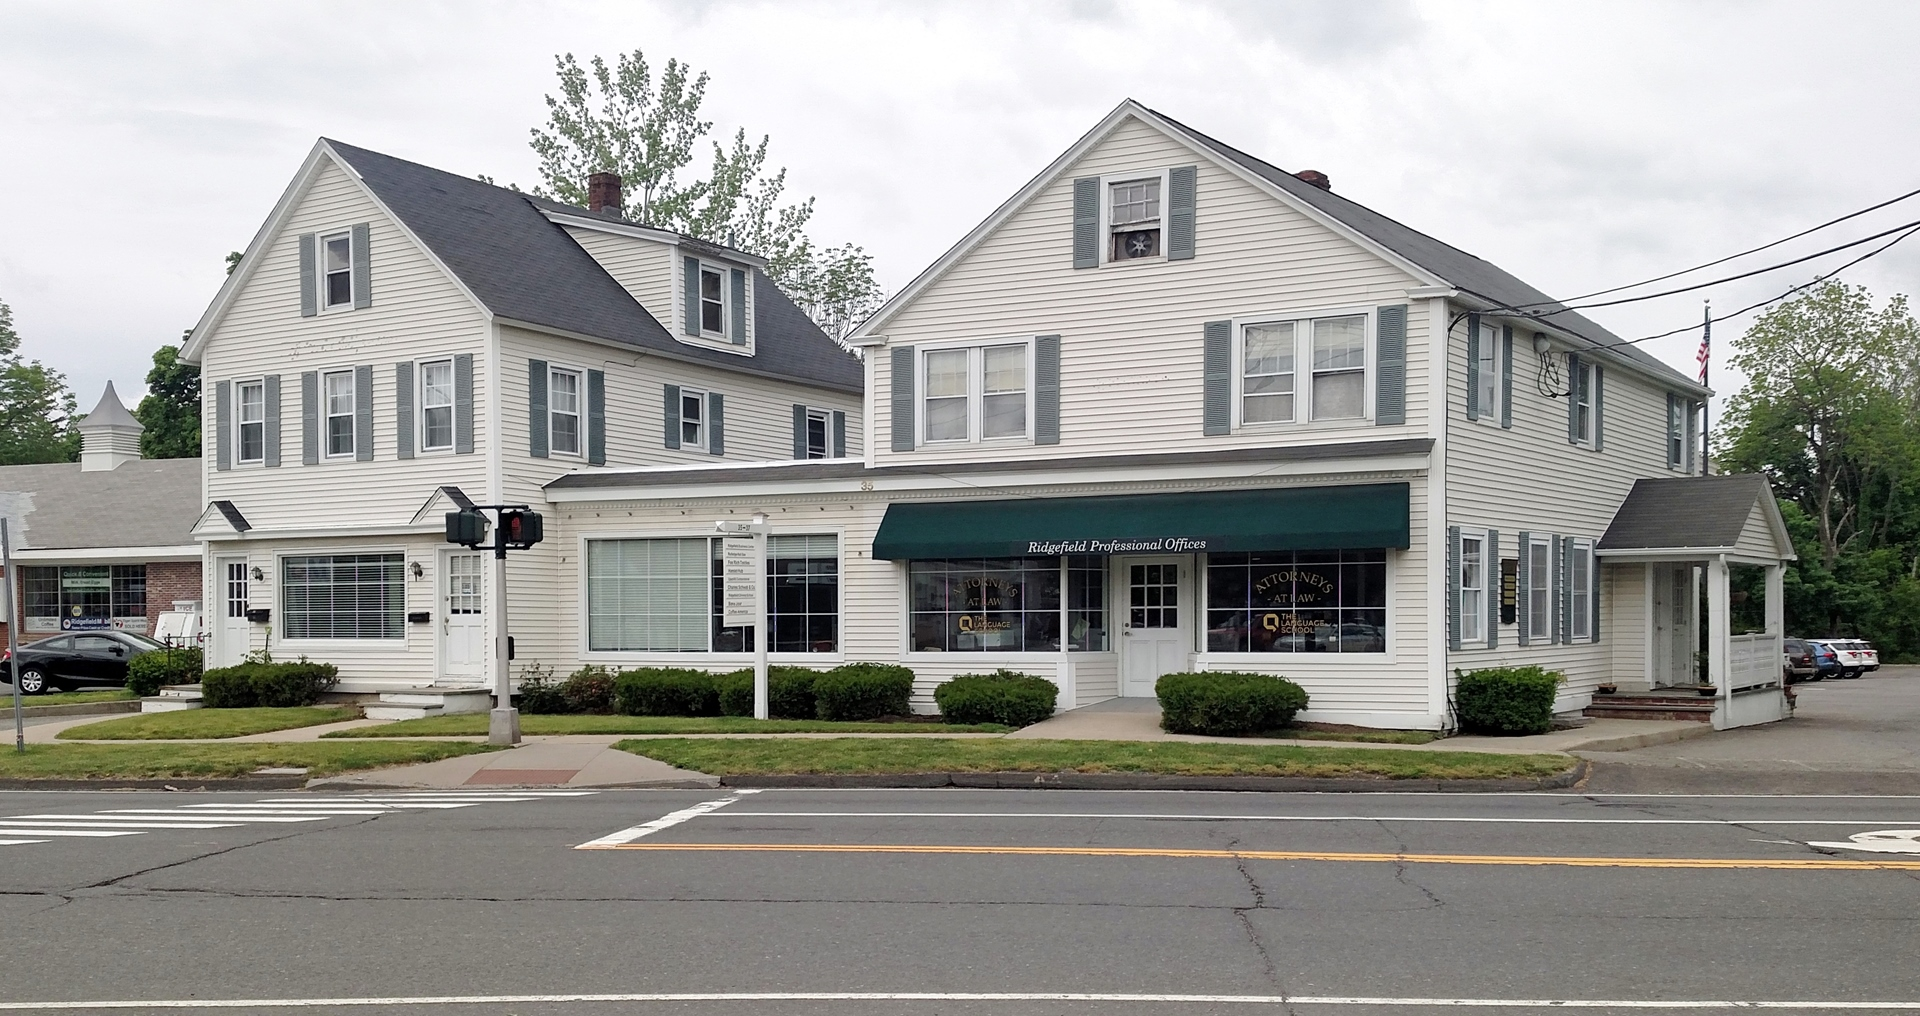 Prime office, retail or restaurant space in the heart of Ridgefield's Business District.  Easy accessibility with excellent exposure to one of the most transited roads in town, convenient to Lower Fairfield County. Offers some of the most visible storefront, retail, and restaurant space in town.  Ample parking with a traffic light    35 Danbury Road is fully occupied at this time.       Please click here      to view other commercial space that we have available.